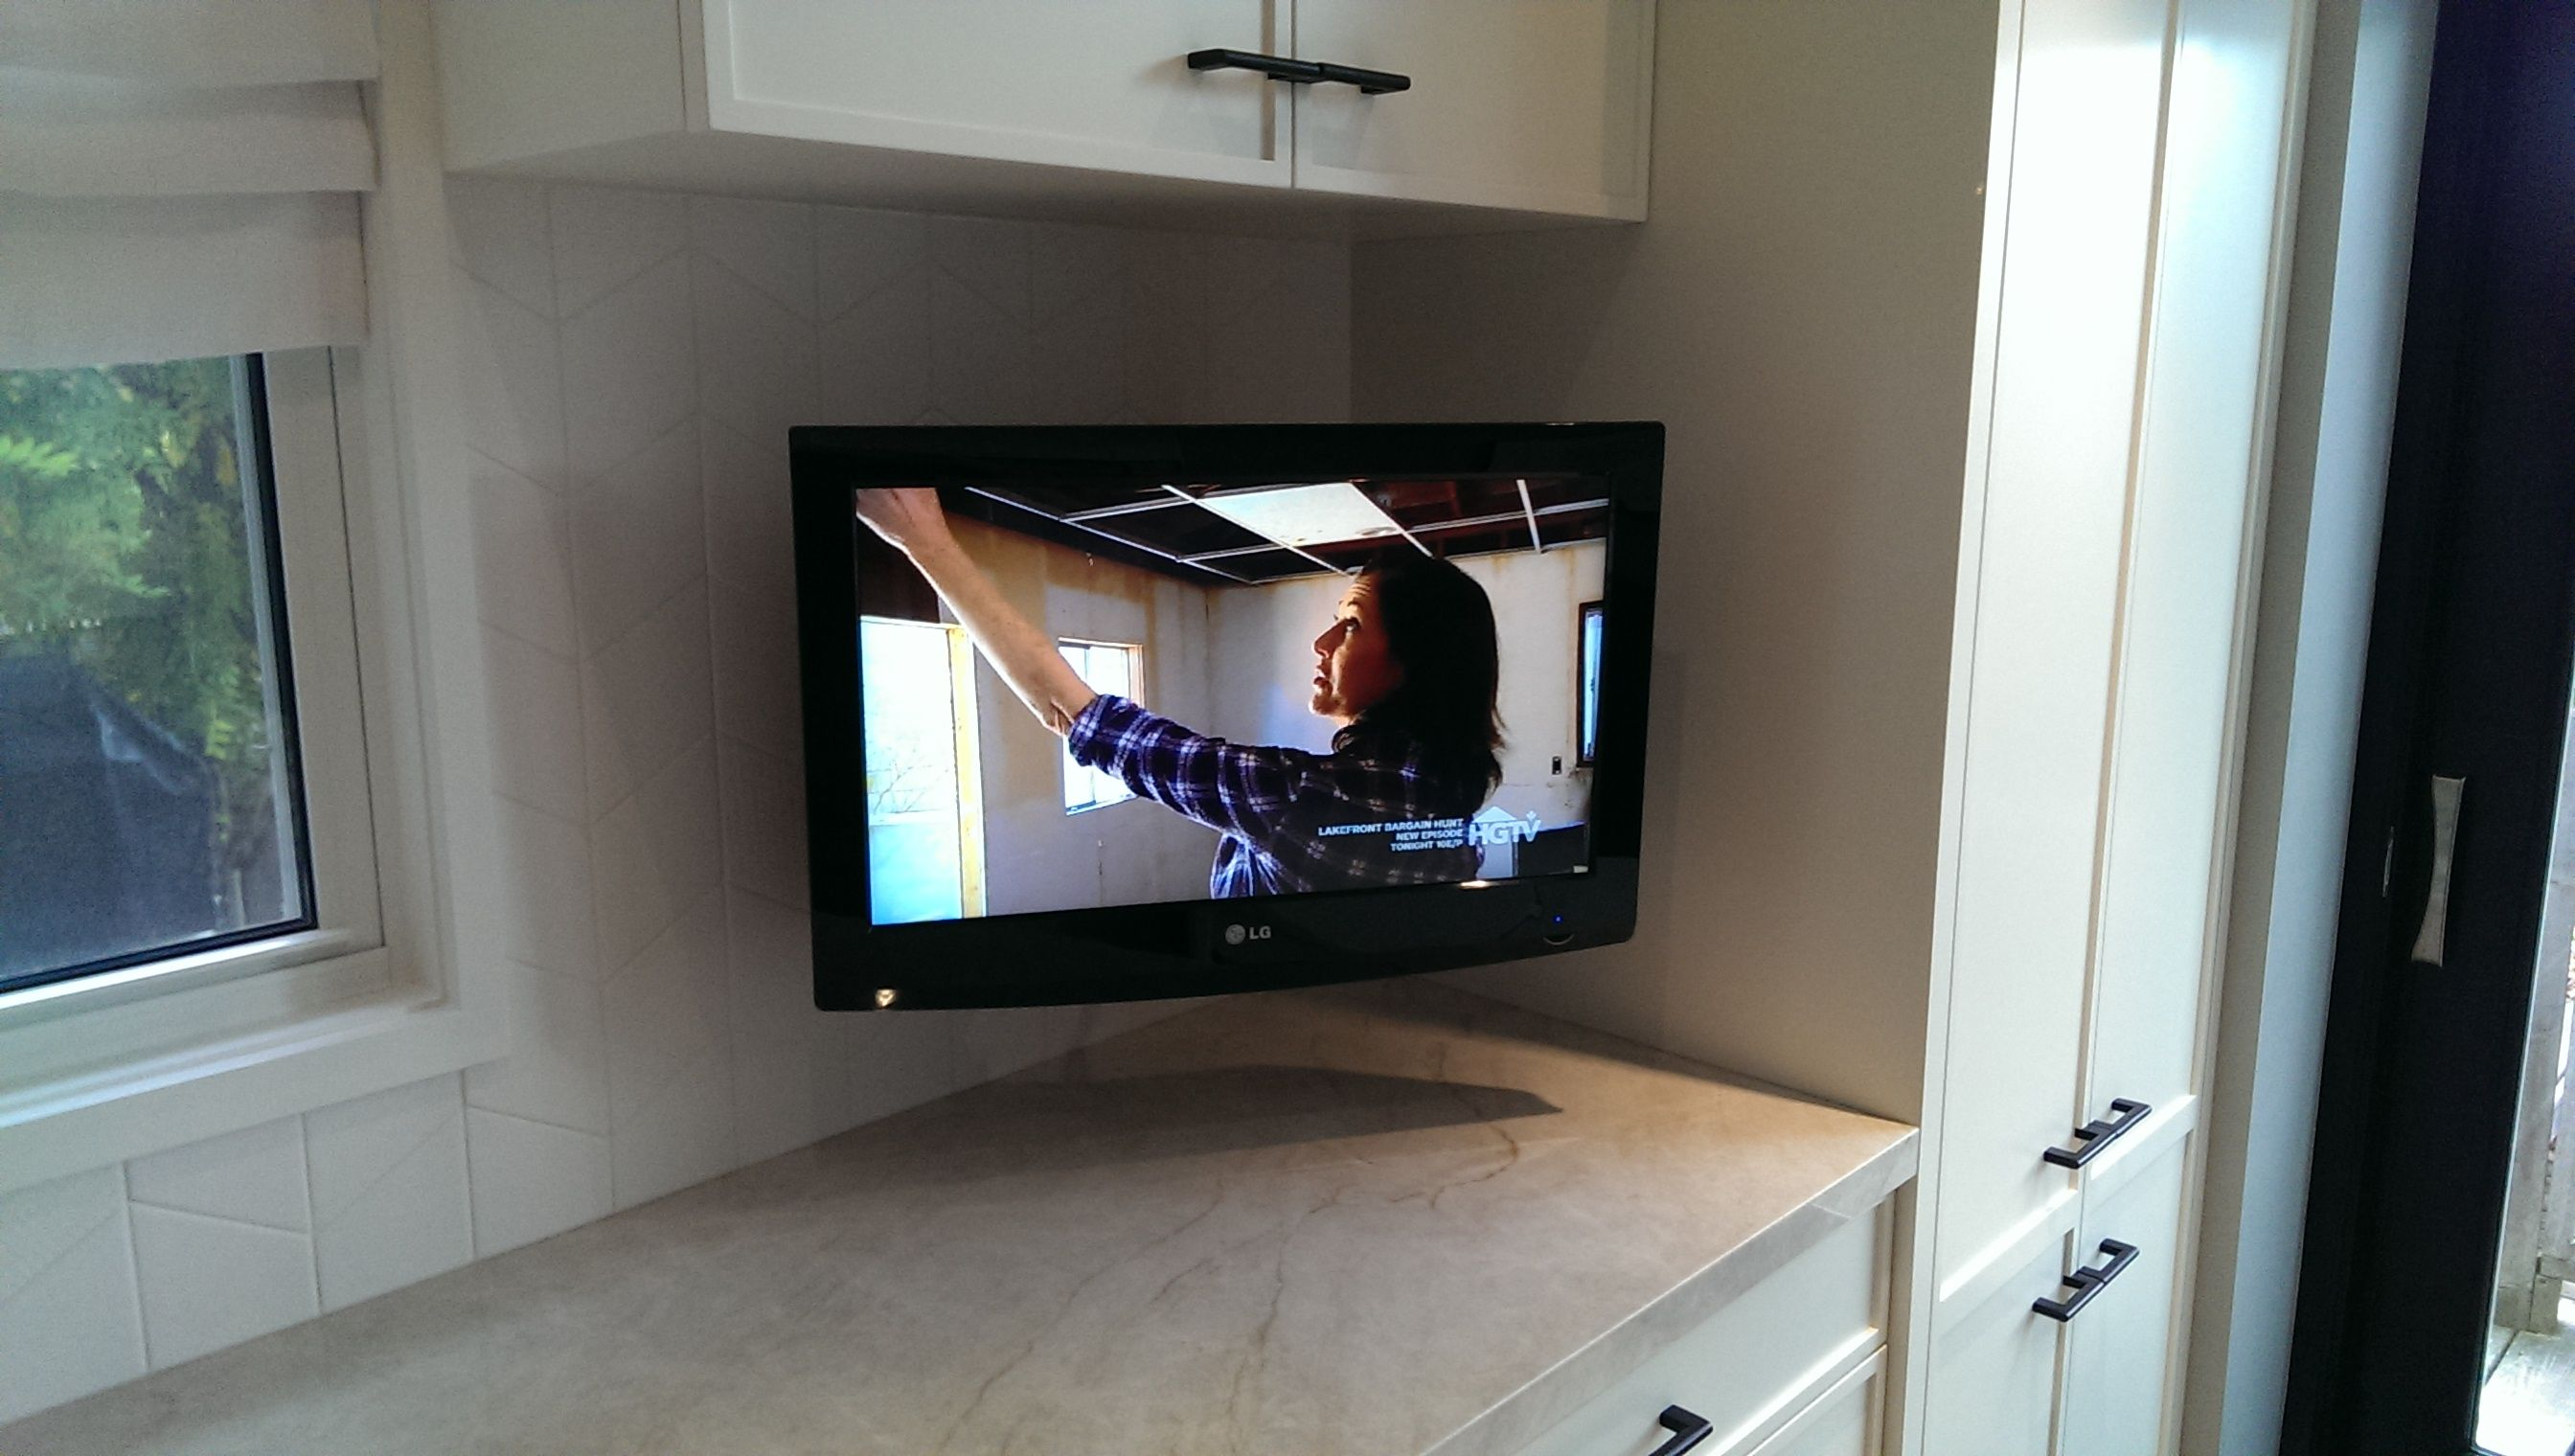 Kitchen Tv No Visible Cables Wall Mounted Tv Tv In Kitchen Wall Mounted Tv Wall Mounted Tv Cabinet